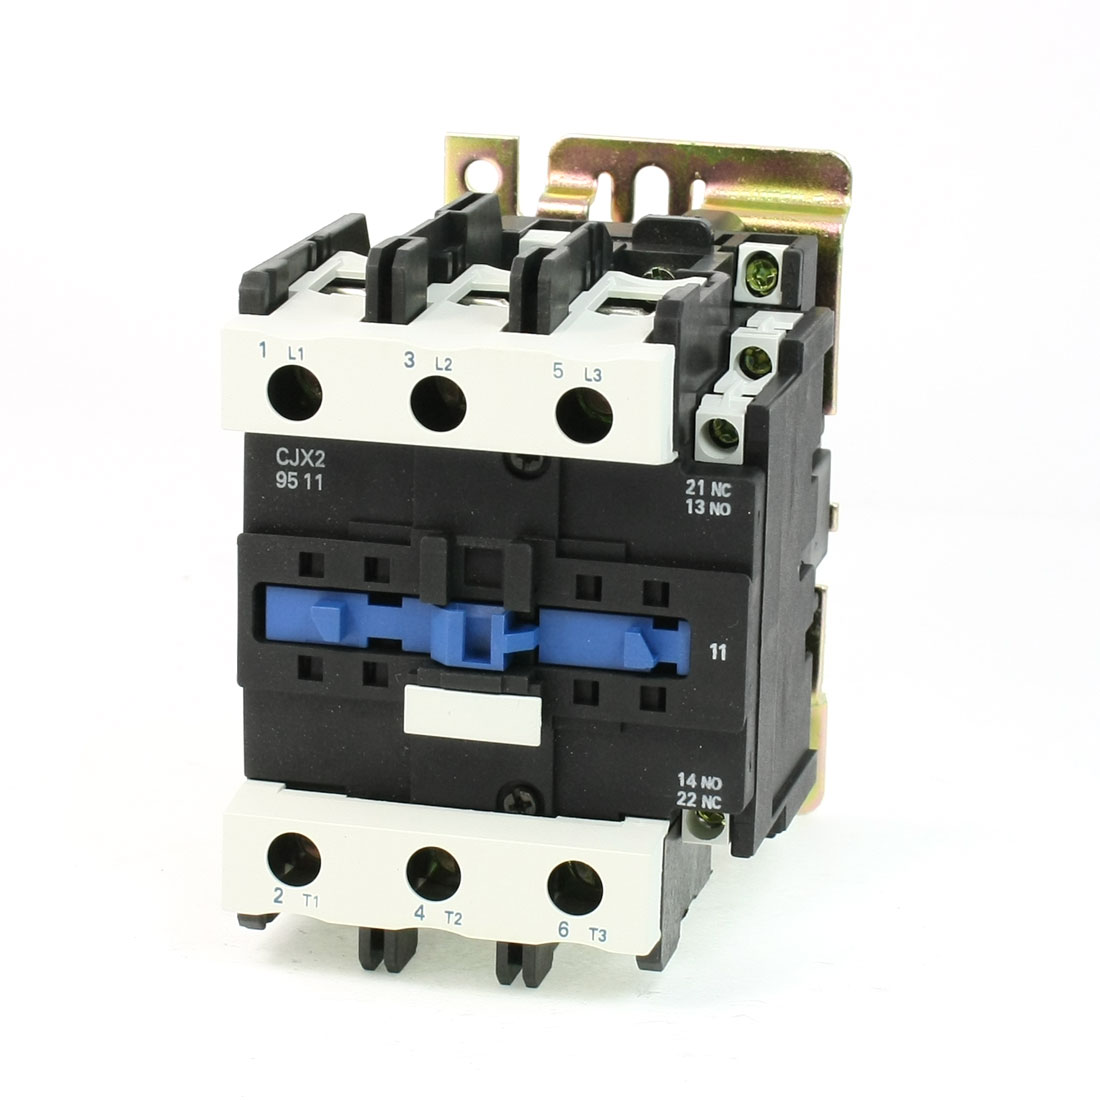 CJX2-9511 DIN Rail Mount AC Contactor 3 Pole One NO 380V Coil 125A